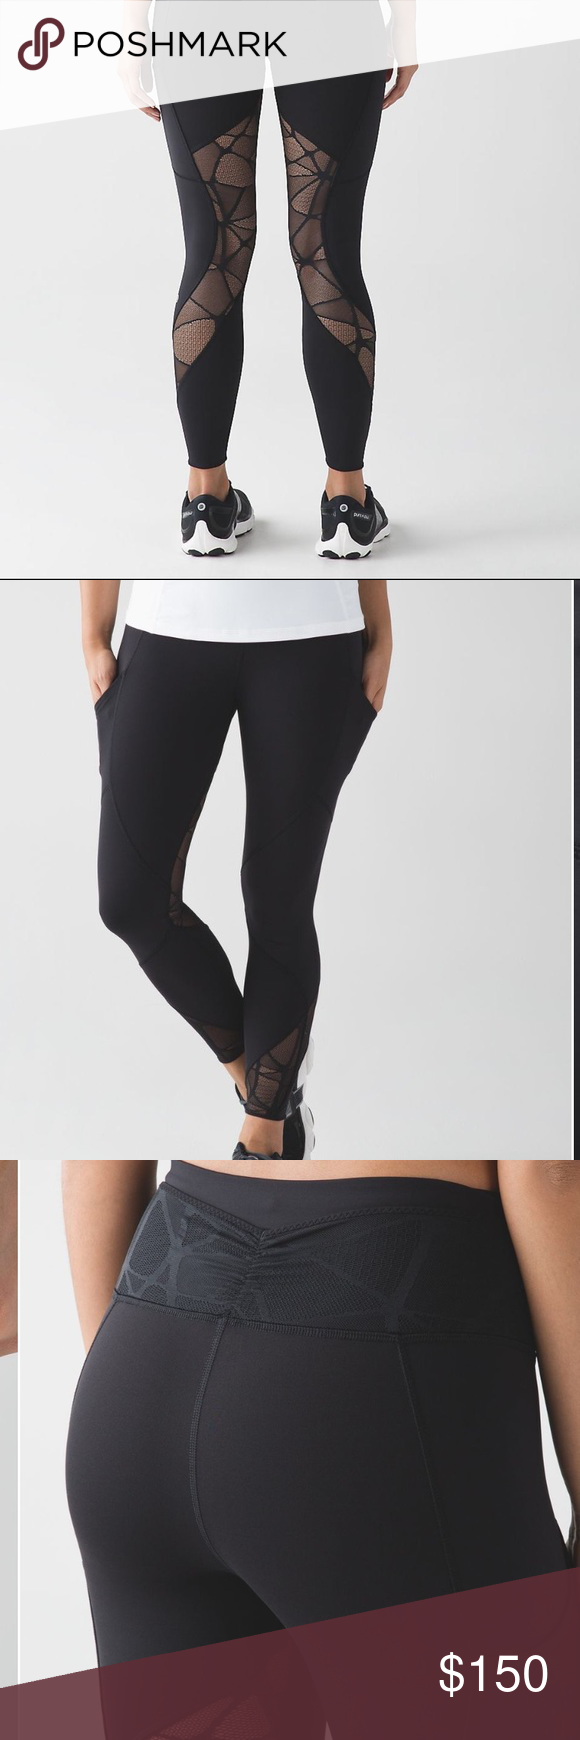 ea8ef3dd5fff52 Lululemon Goal Crusher 7/8 Tight New without tag. Size 4. SOLD OUT. Price  is firm lululemon athletica Pants Leggings